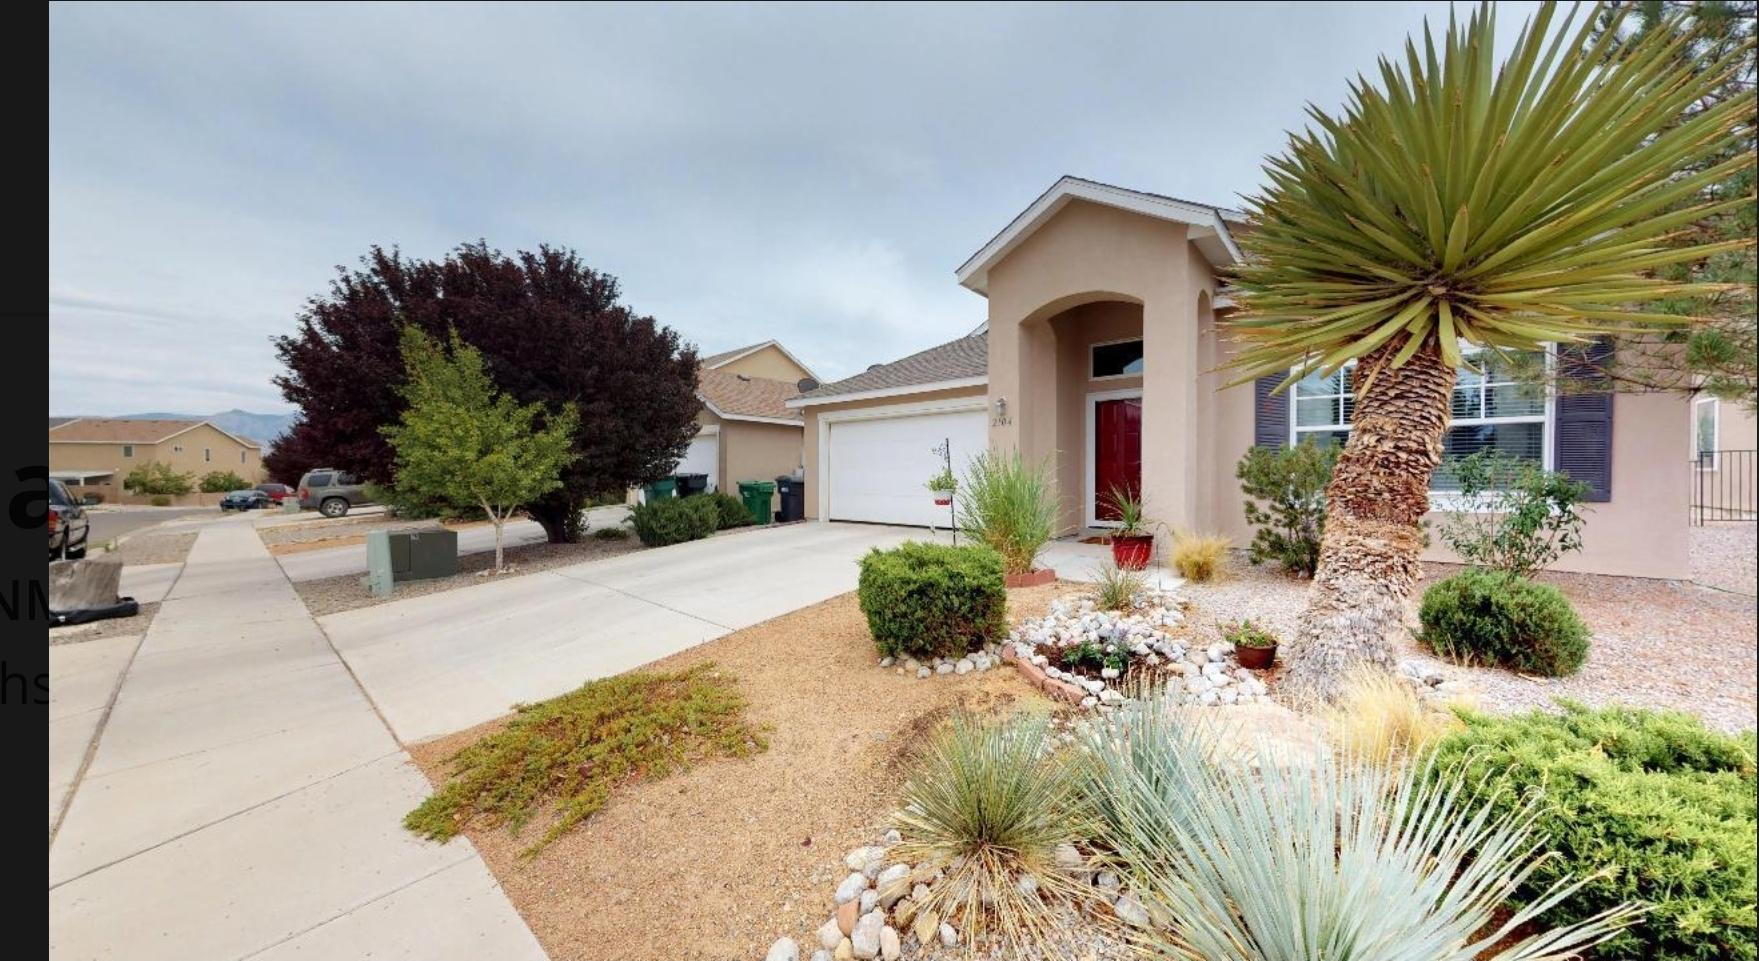 : Welcome to one of the most sought after subdivisios in Rio Rancho. Cabezon is known for the great schools, lovely parks, and convent accessto shopping and entertainment. With a clean and fresh appeal, this home almost looks new. Newer flooring, updated kitchen, large master bedroom,2 walk-inclosets, and a separate garden tub in the master bath. Two additional spacious bedrooms, and plenty of space in the guest bath. Gas fireplace for atmosphere,along with natural gas grill connections on back patio. Fresh and ready for you to move in, schedule your privet showing today and come see this beautifulspacious home to get the full experience!